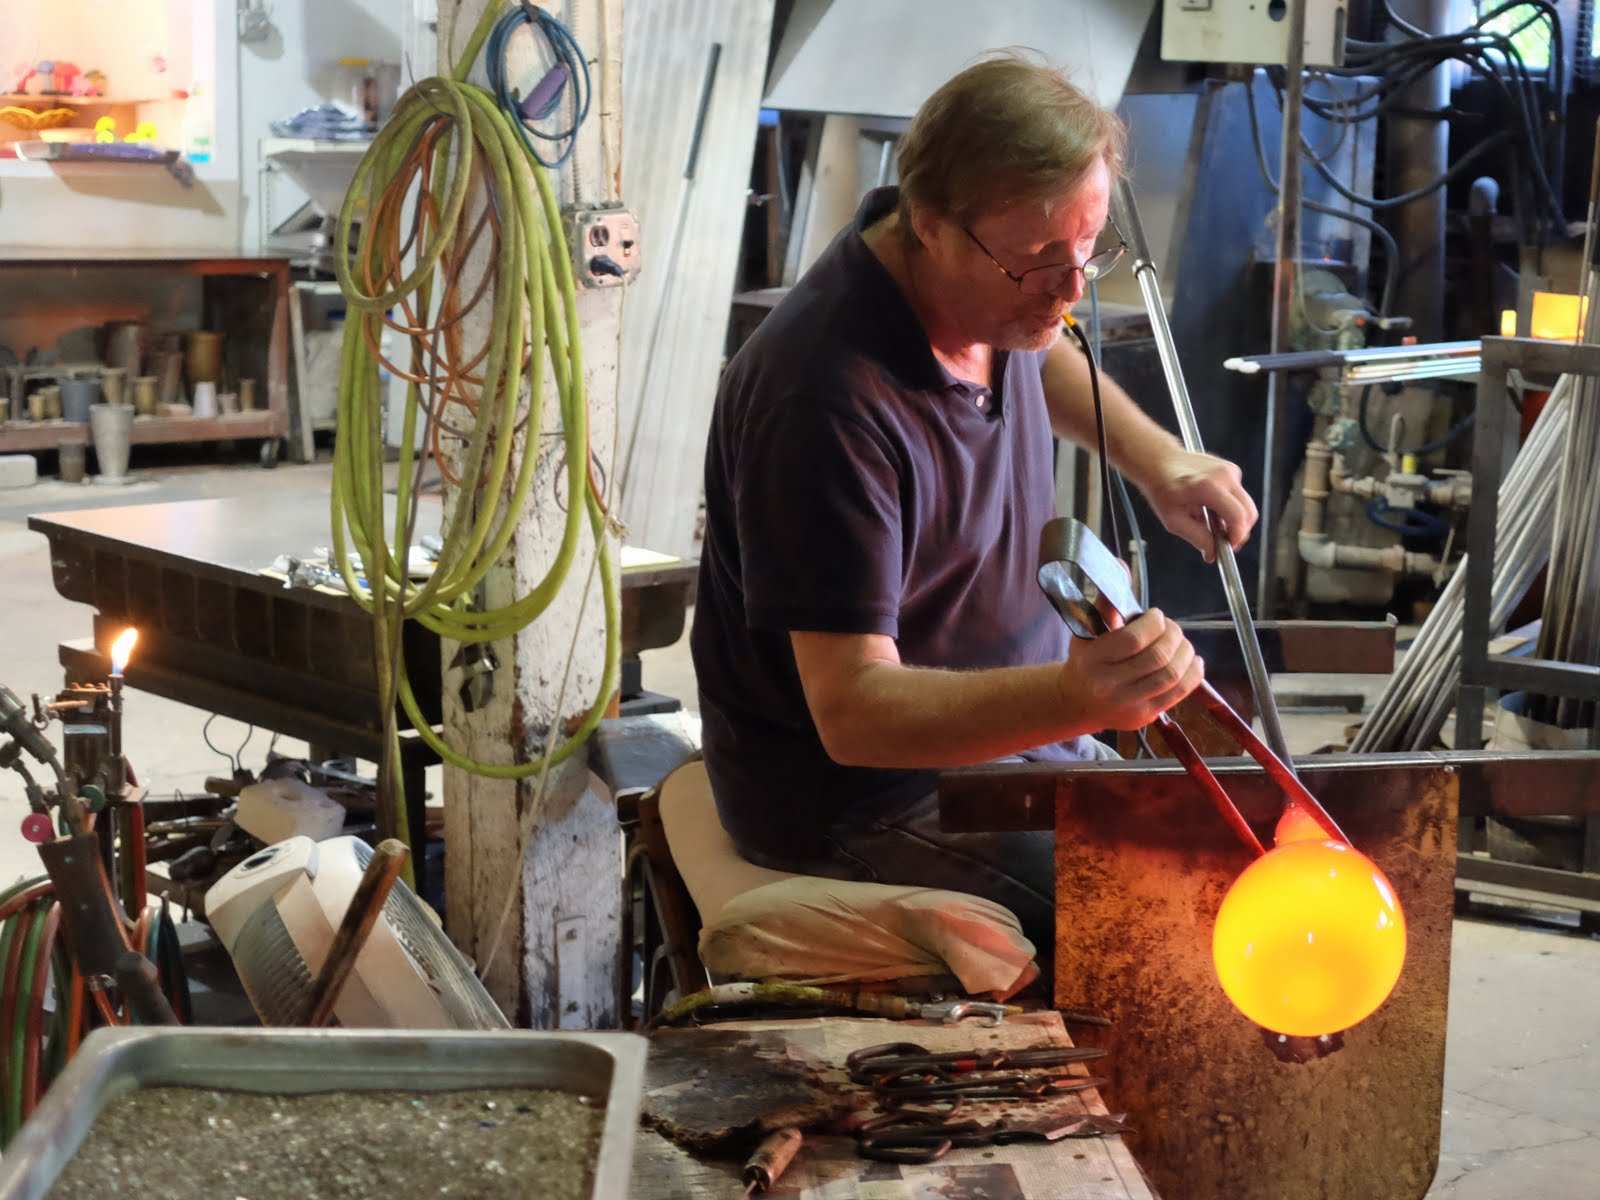 Bellemead Hot Glass, Robert Kuster,Hillsborough NJ 08844